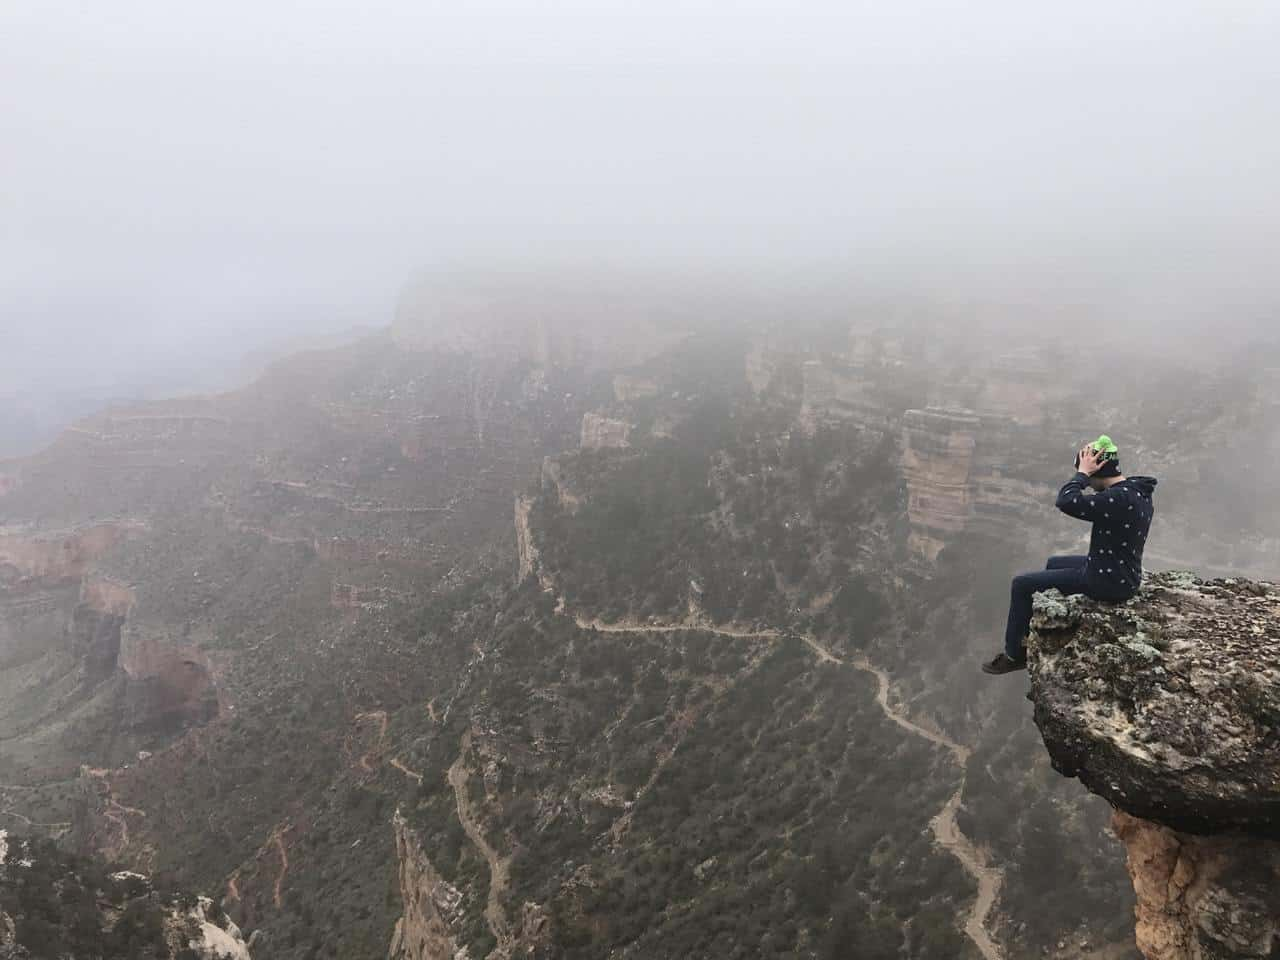 Man sitting on edge of cliff - Blessed